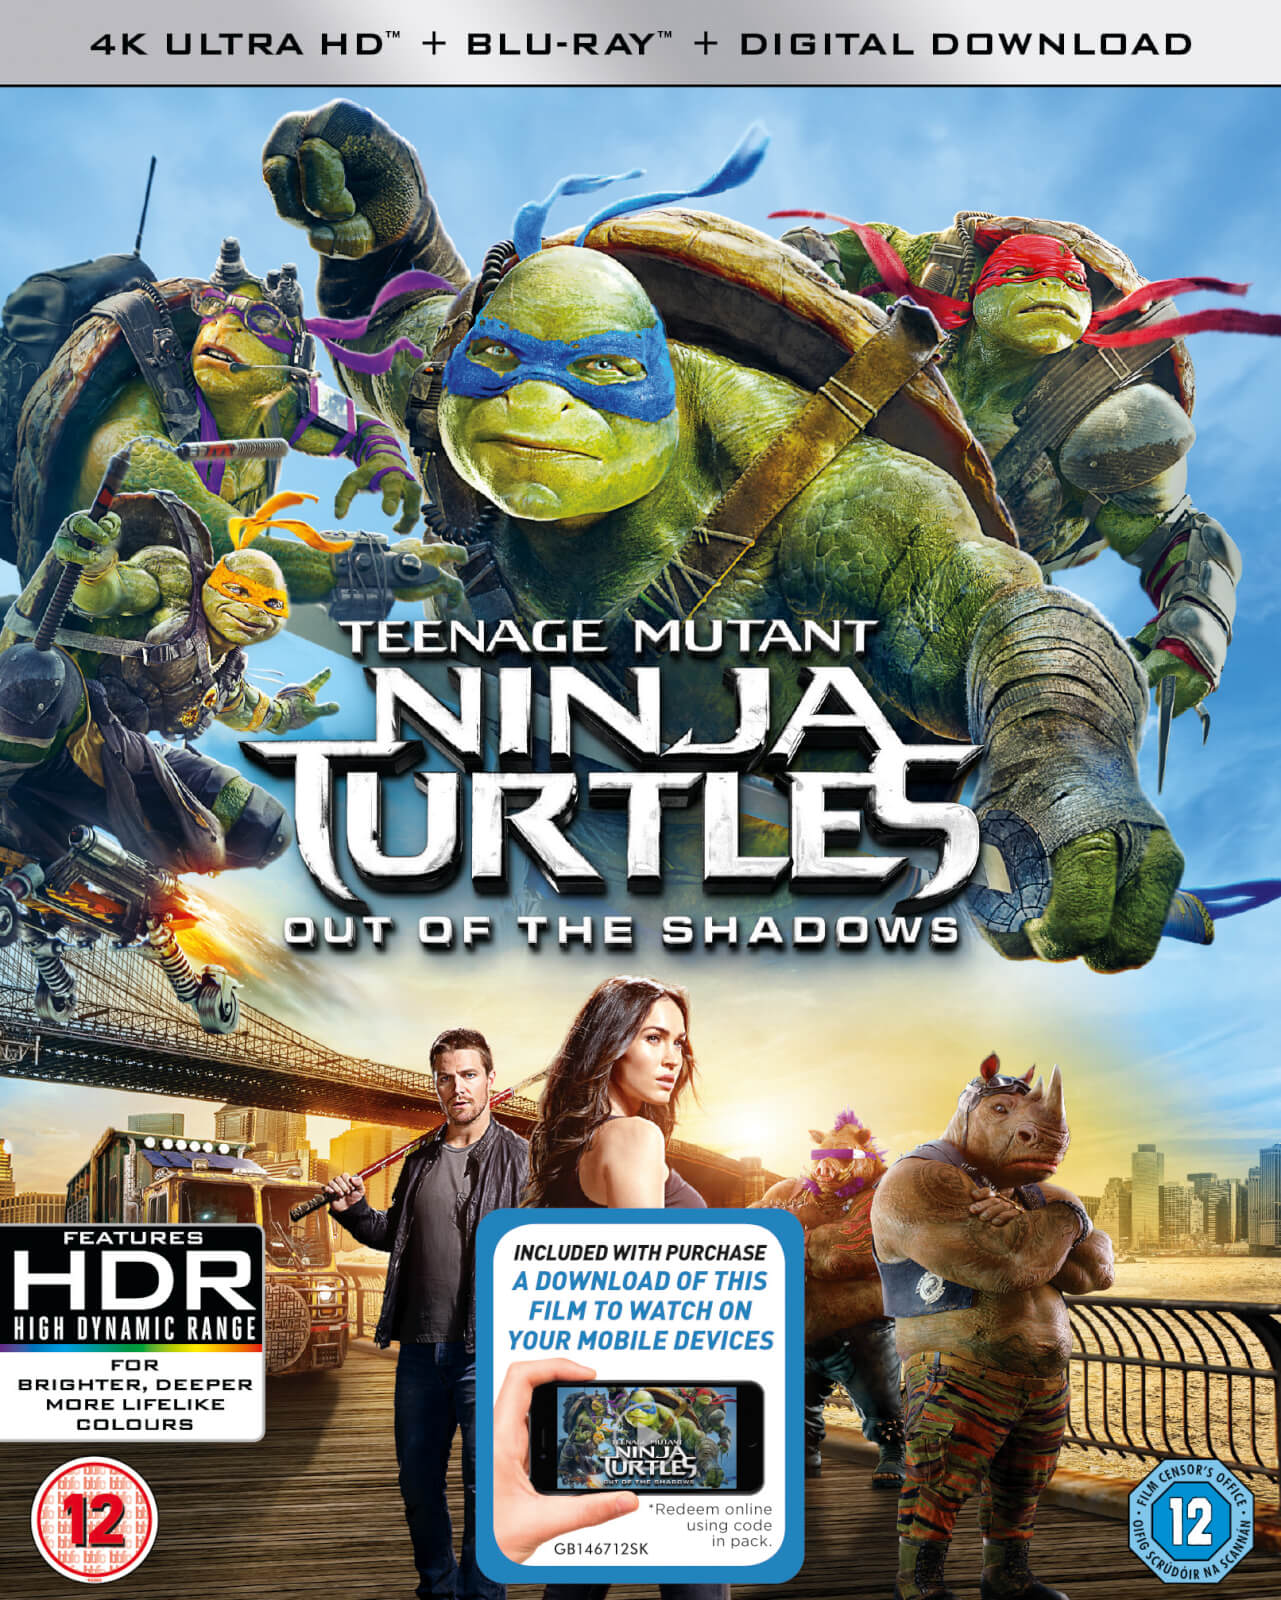 Ninja Turtles 2 - 4K Ultra HD